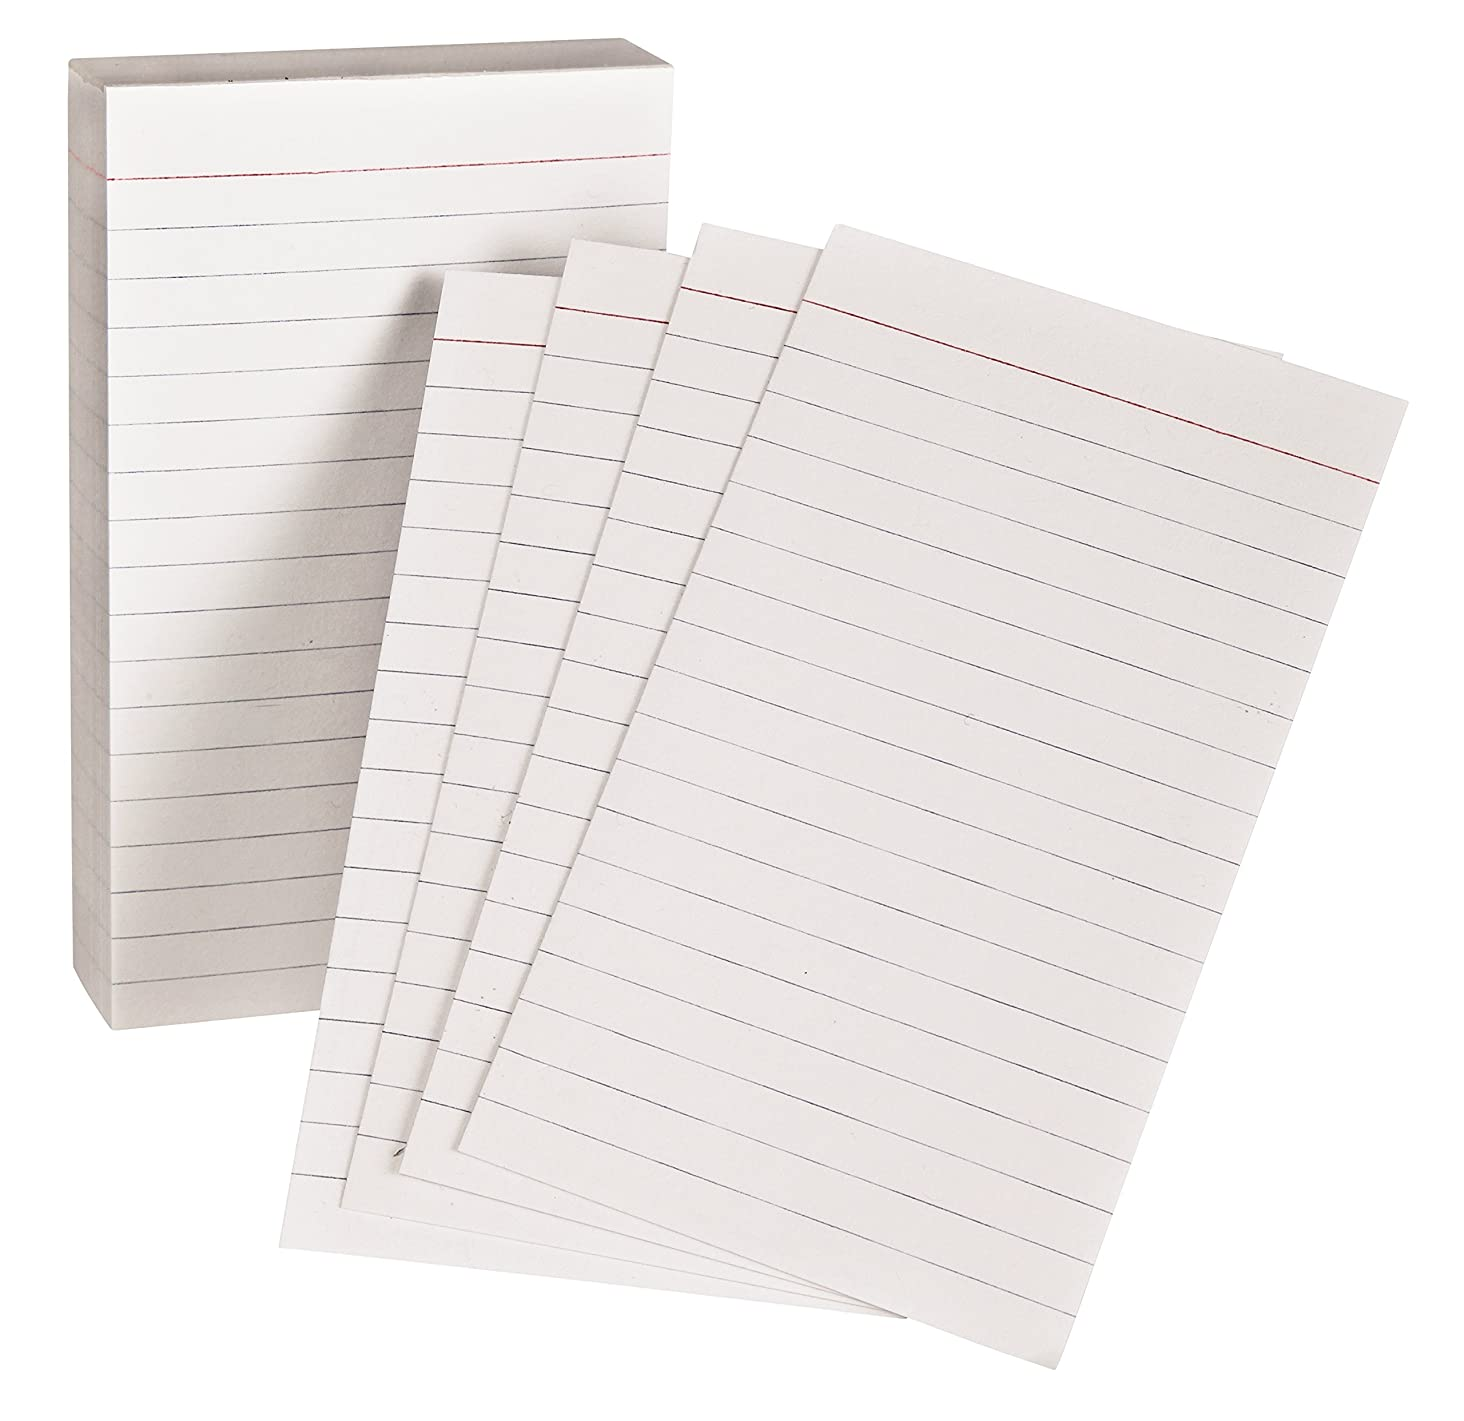 Oxford Padded Memo Ruled Index Cards, White, 5 x 3 Inches, 100 per Pack (006351)